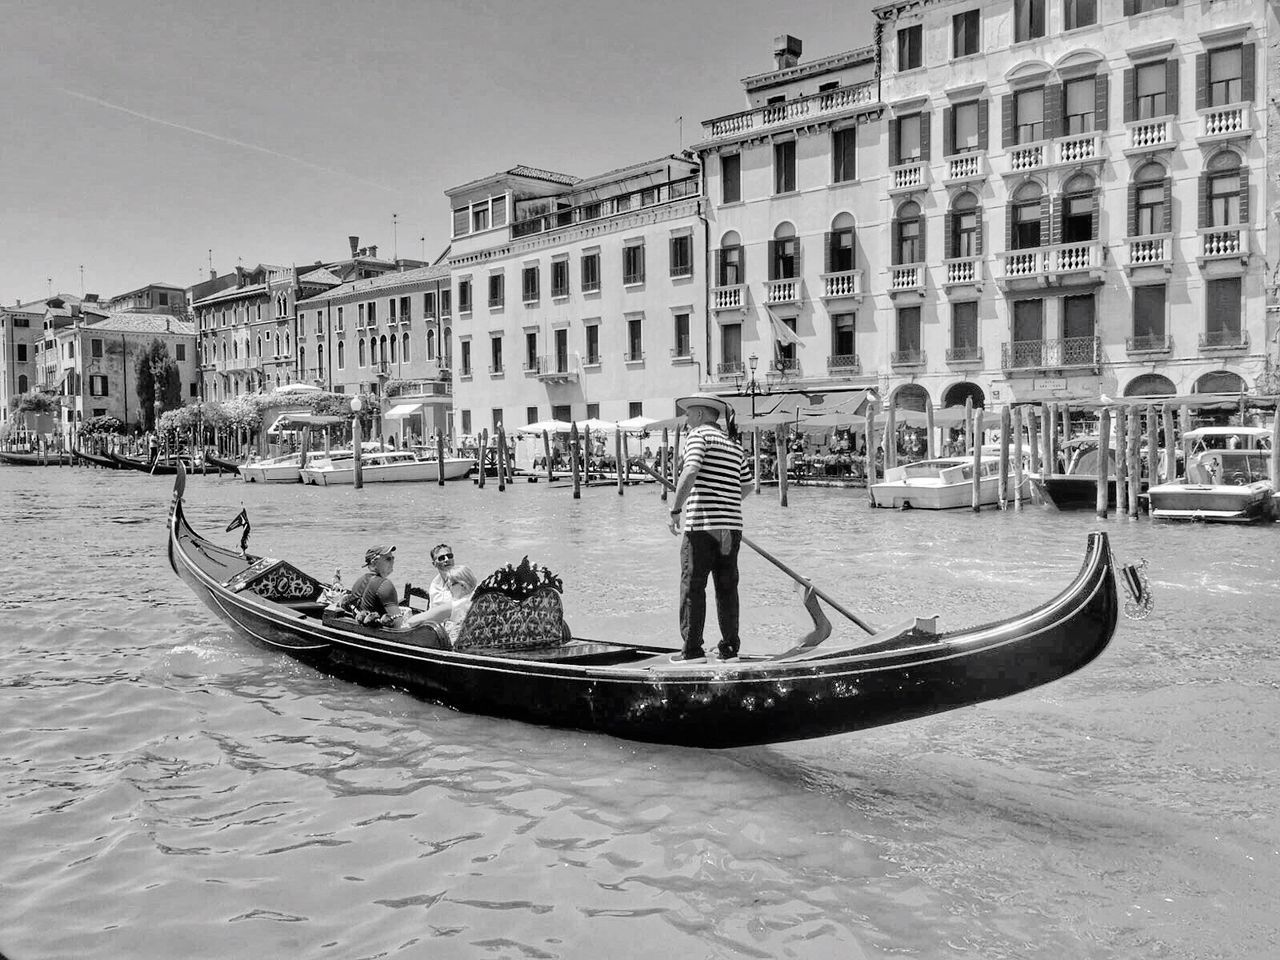 Architecture Building Exterior Built Structure Transportation Nautical Vessel City Water Waterfront Mode Of Transport Boat Large Group Of People Canal Men Lifestyles Residential Building City Life Travel Travel Destinations Gondola - Traditional Boat Day